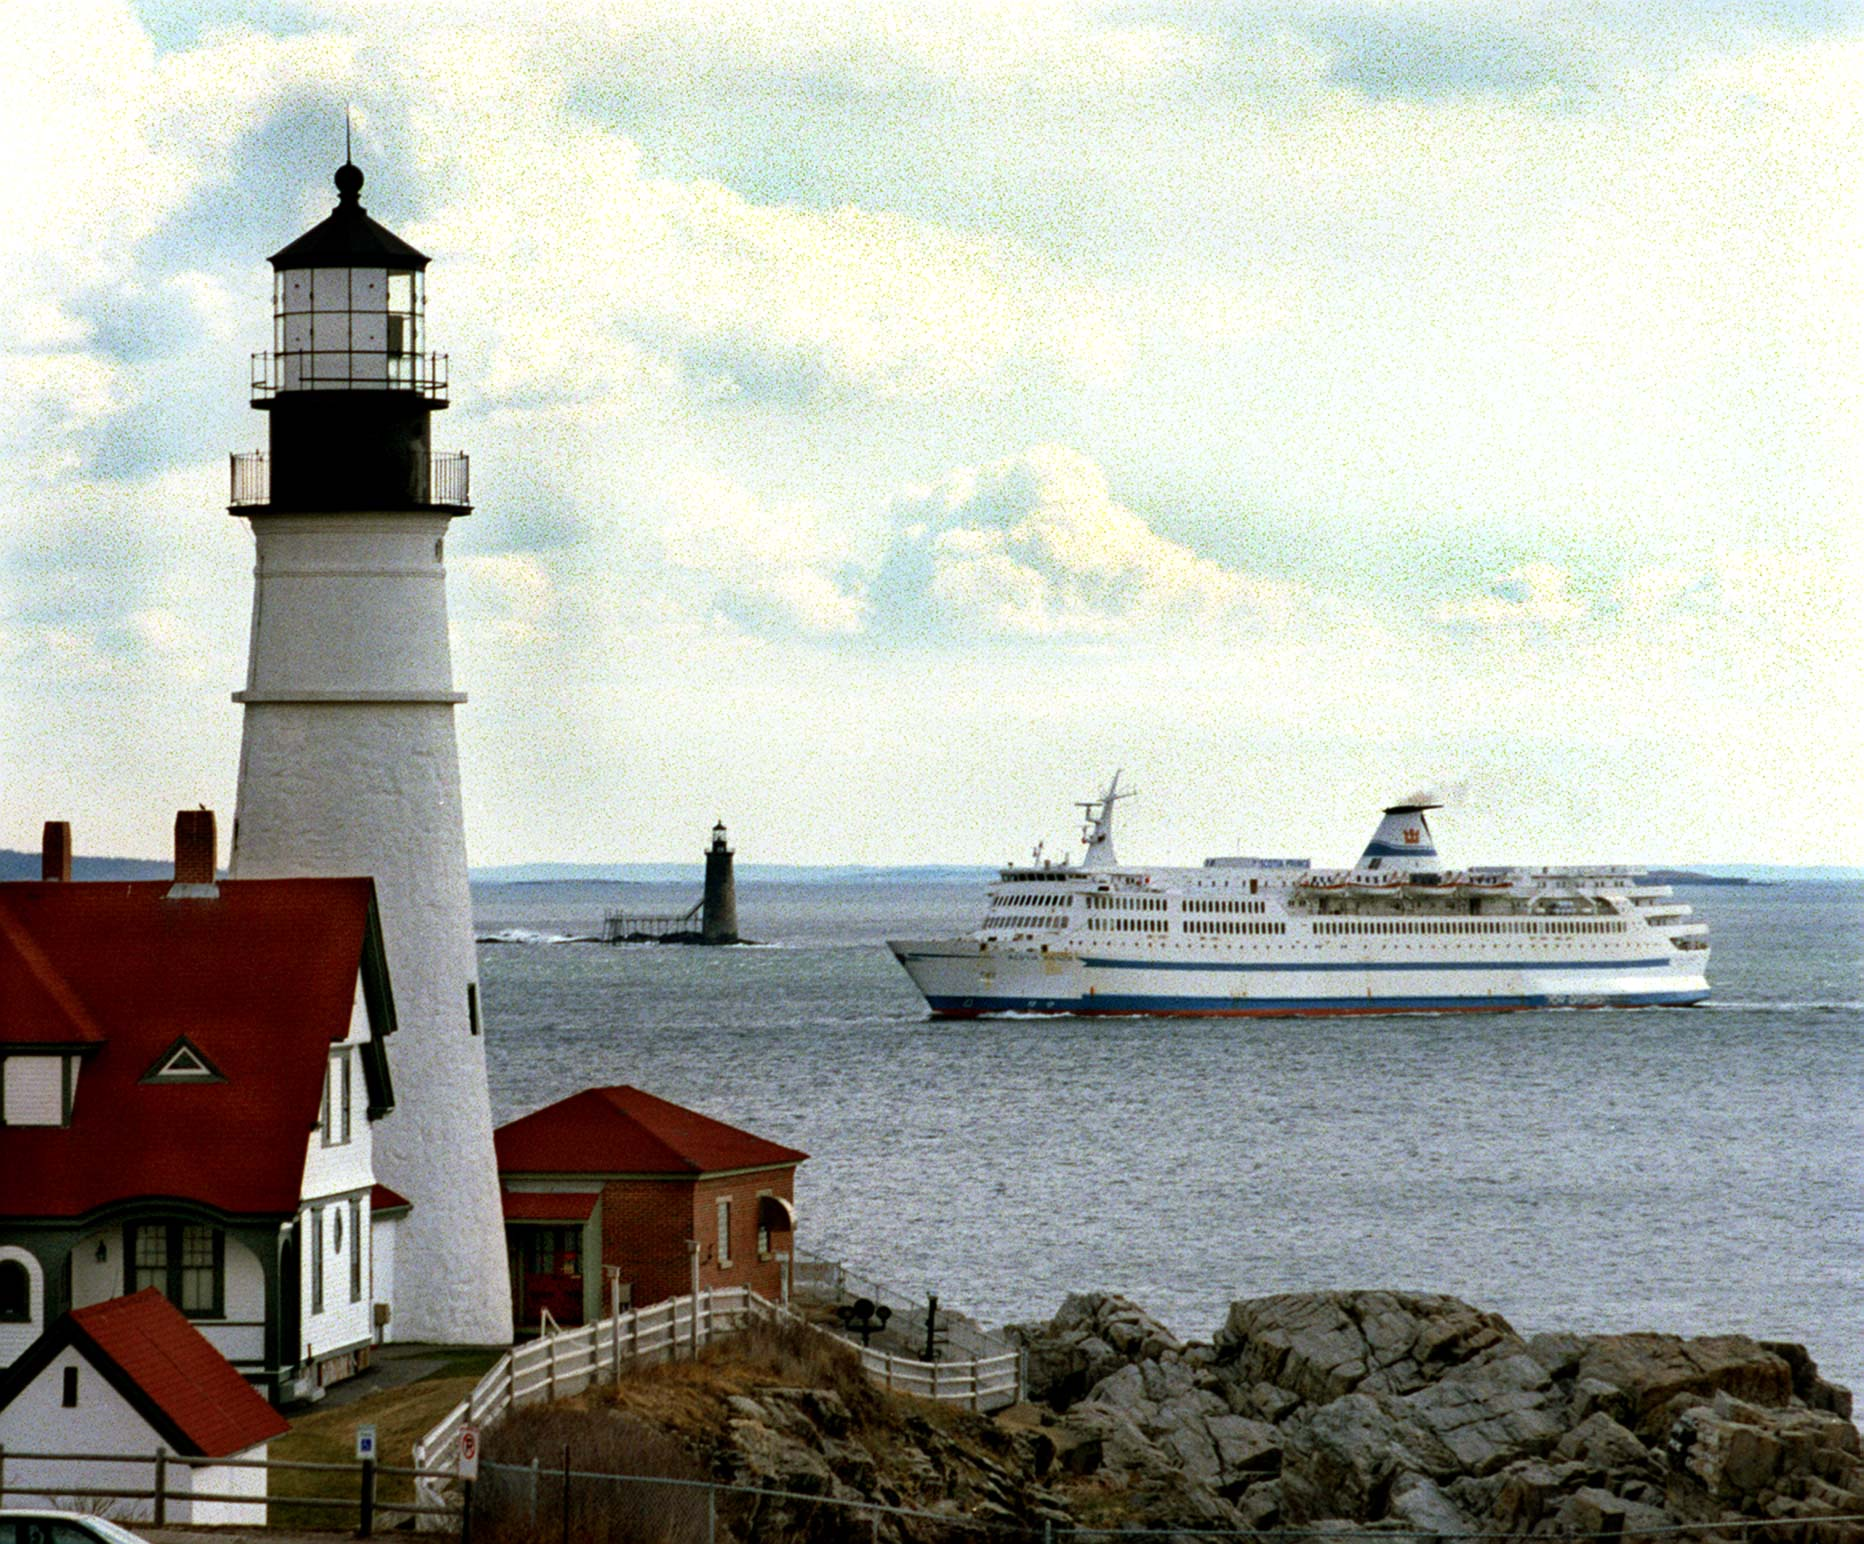 The Scotia Prince returns to Portland for the summer season on April 8, 1997. In the foreground is Portland Head light and Ram Is. light is in the background.